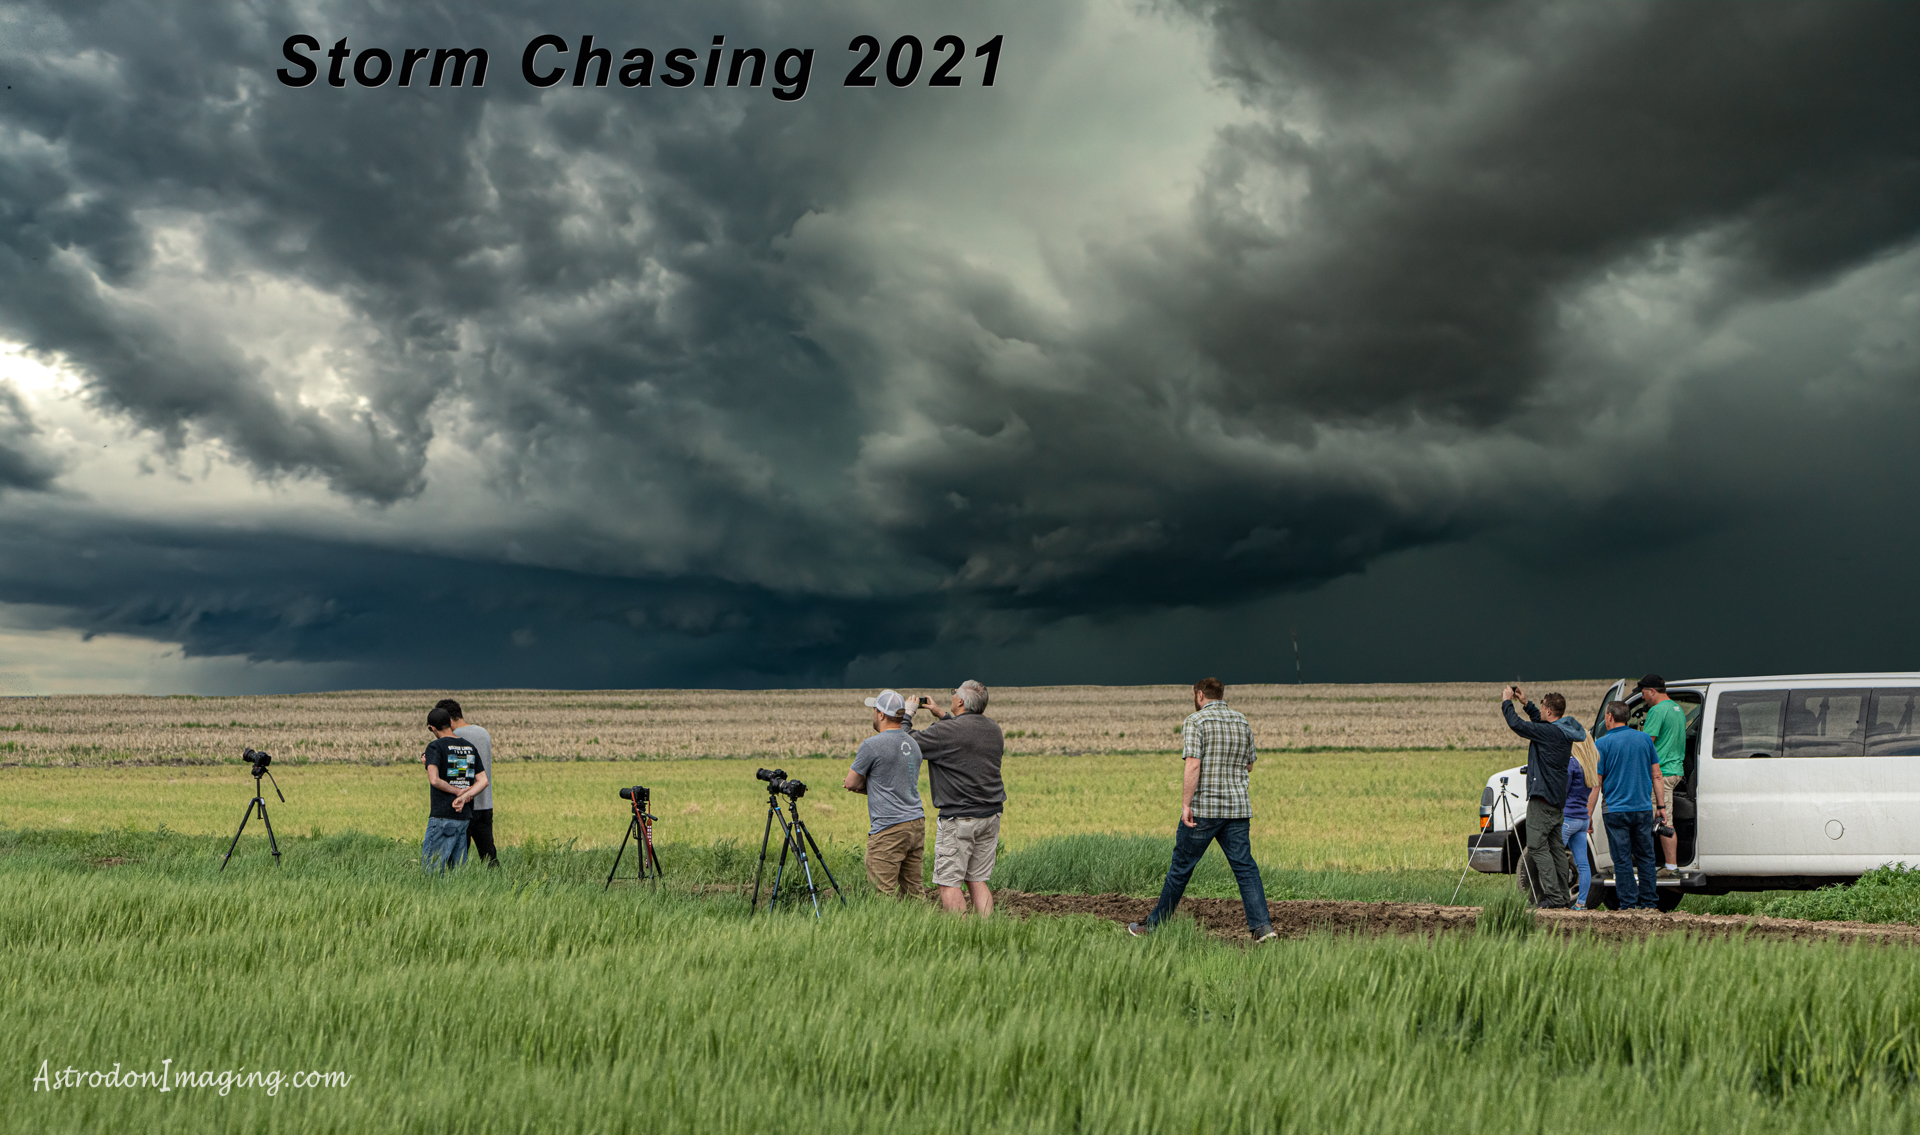 Storm Chasing 2021